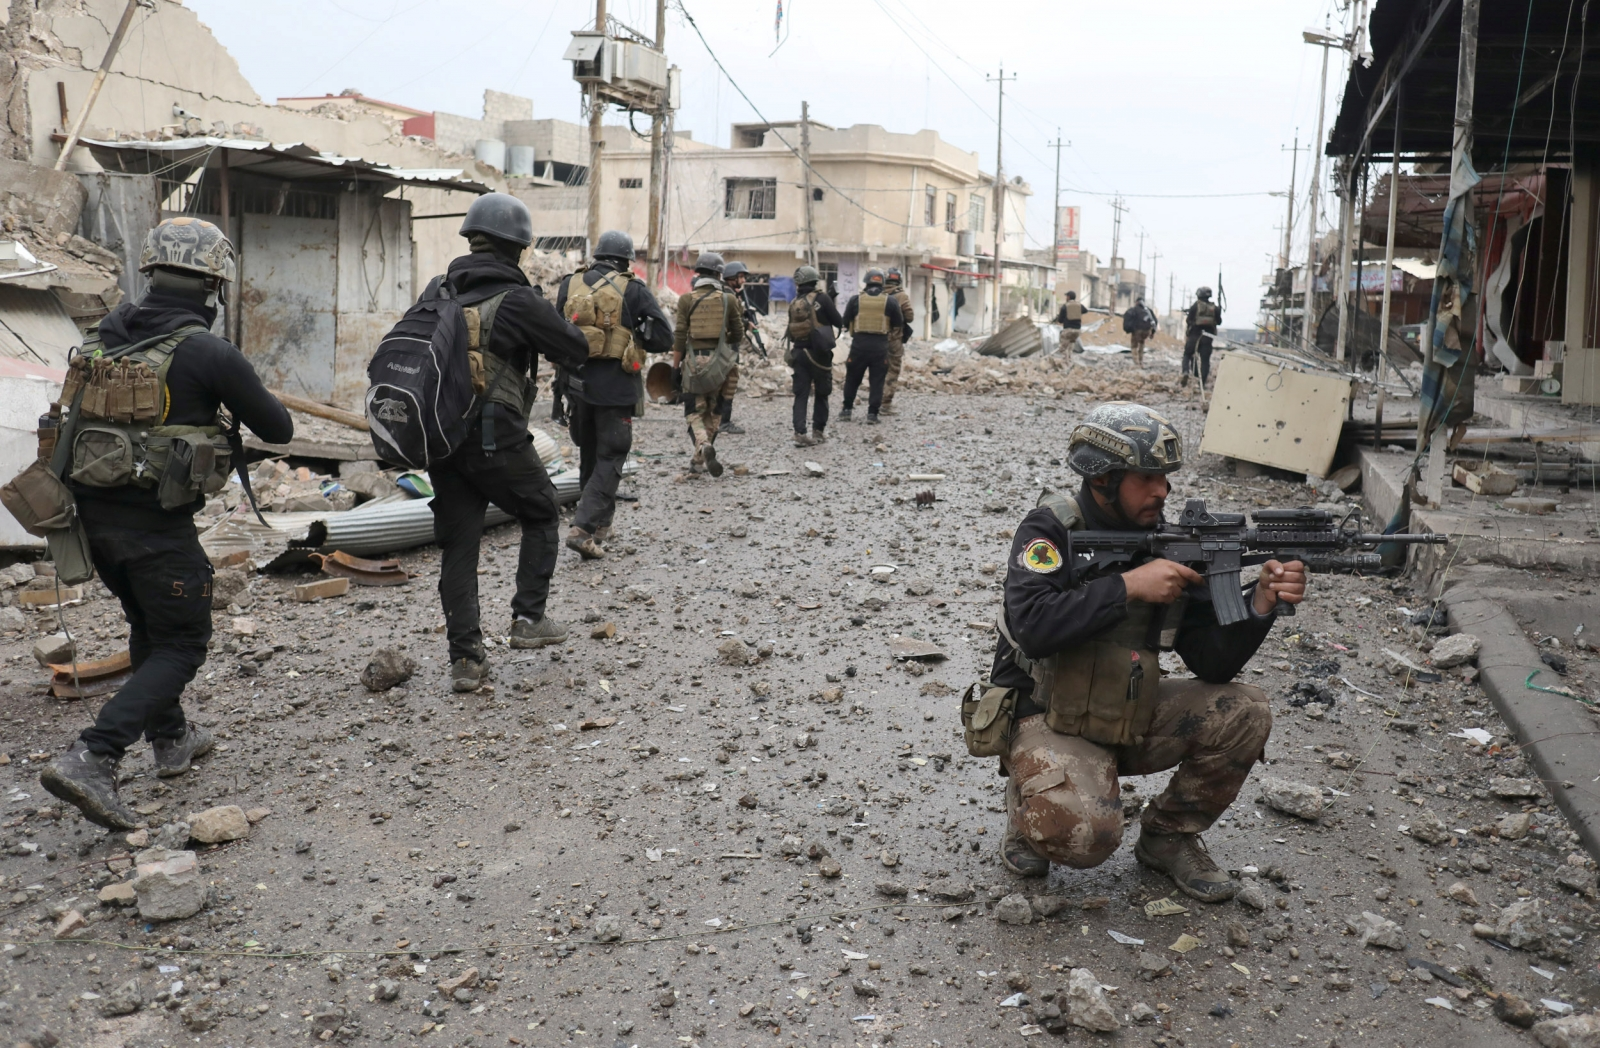 If confirmed, chemical attacks in Mosul a war crime